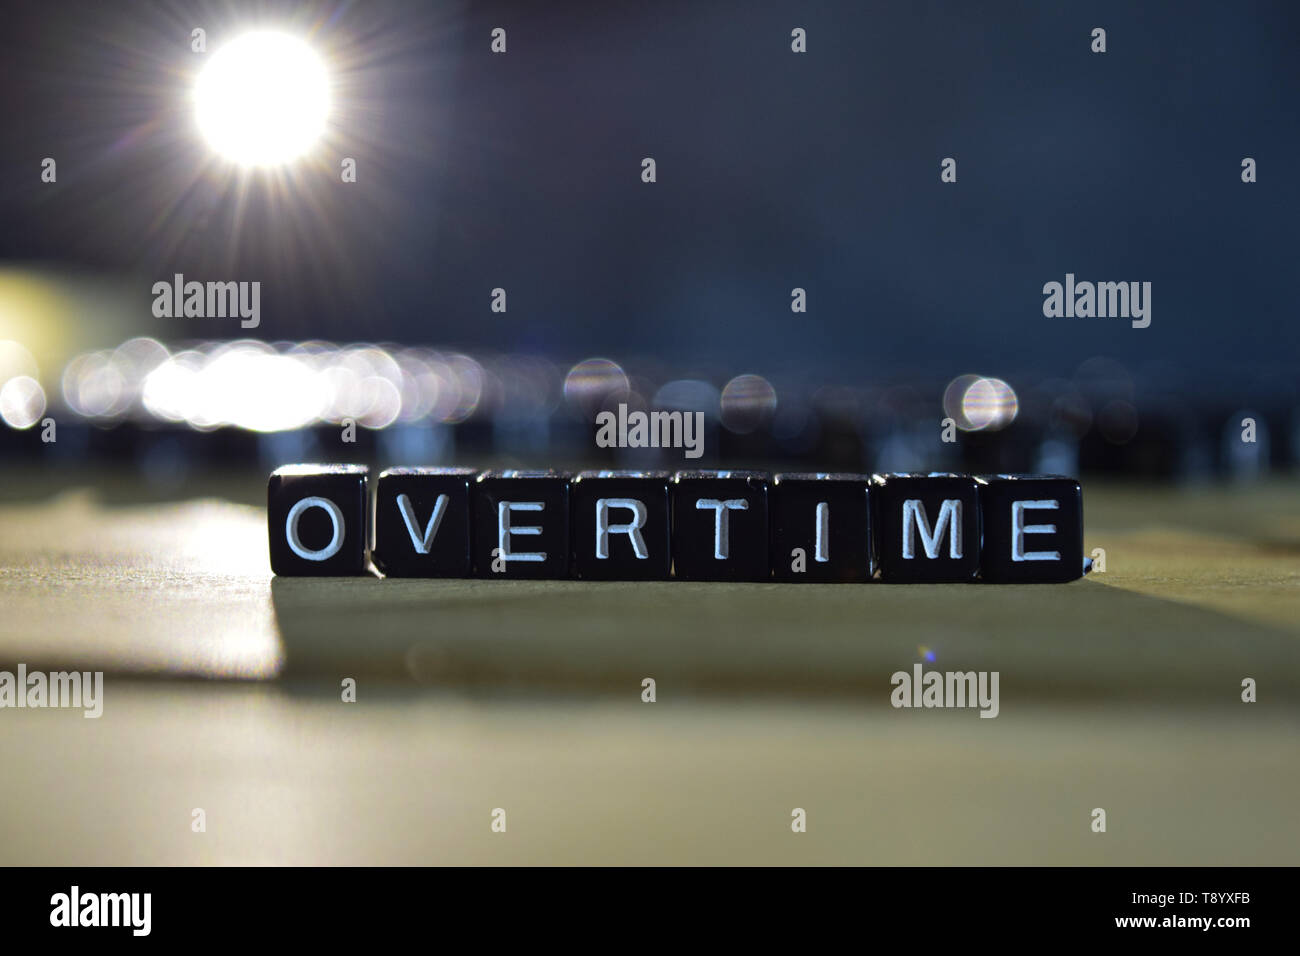 OVERTIME concept wooden blocks on the table. With personal development and motivation concept on blurred or black background - Stock Image